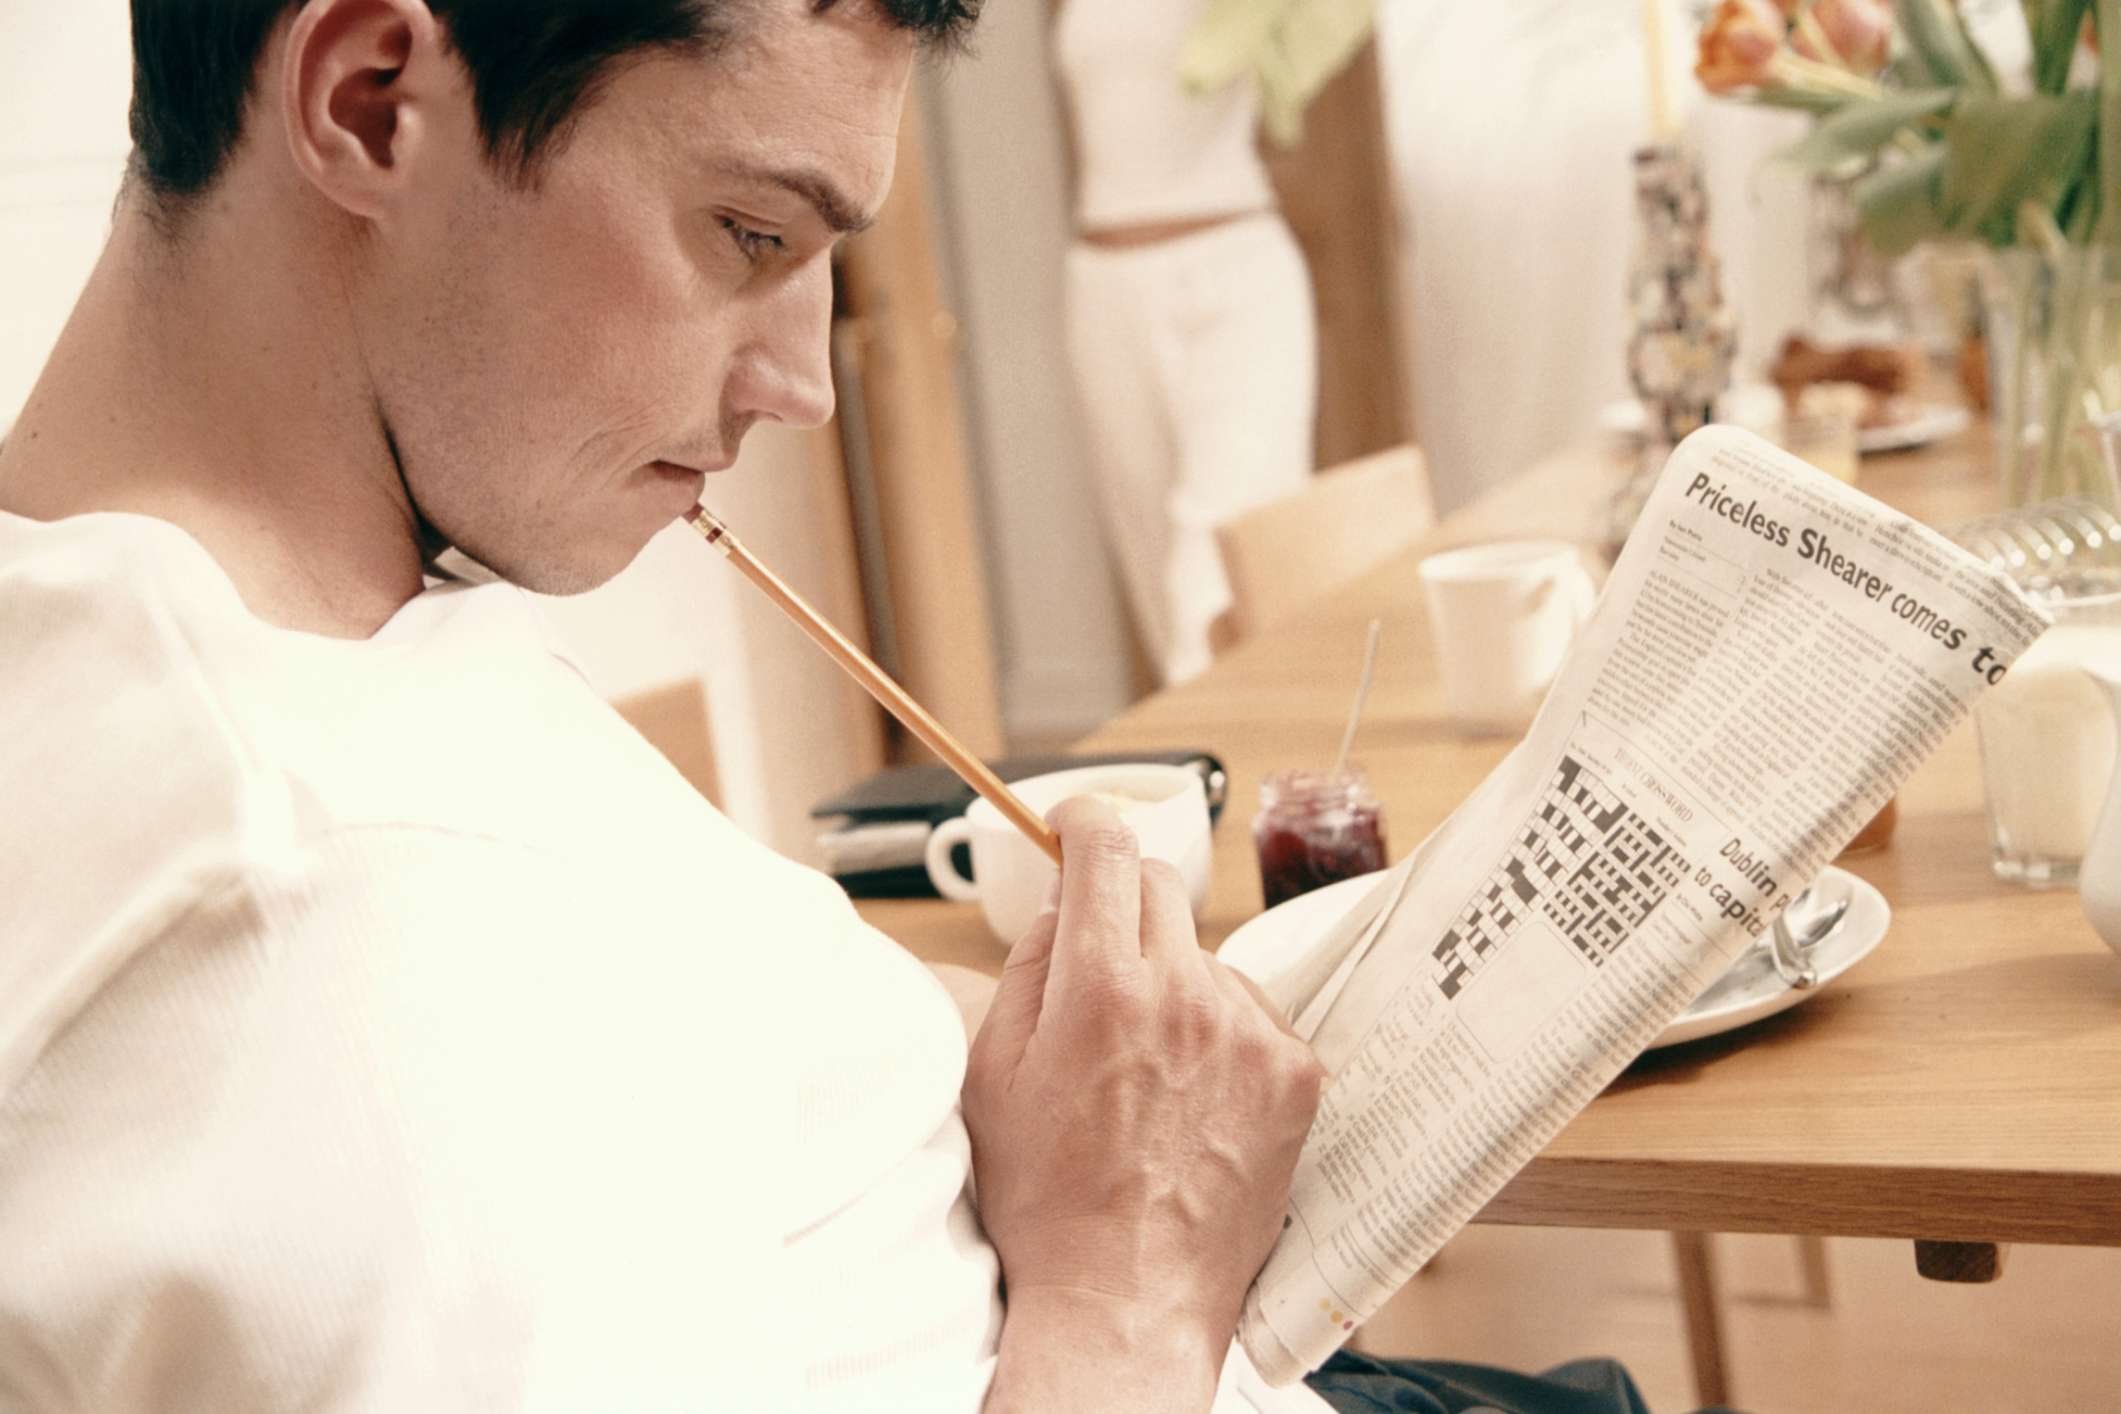 Man working on a newspaper crossword at home